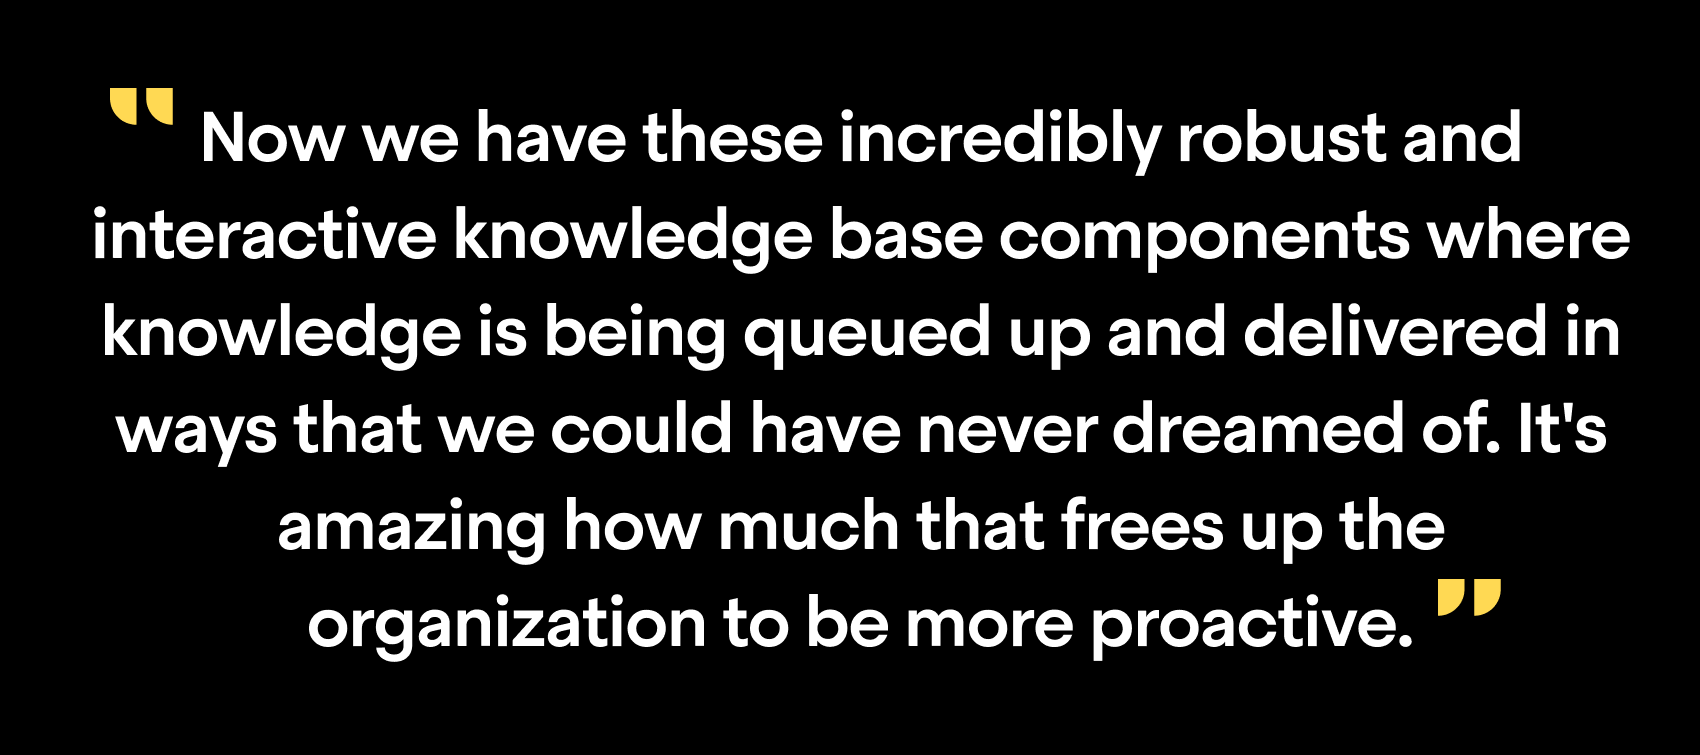 """Now we have these incredibly robust and interactive knowledge base components where knowledge is being queued up and delivered in ways that we could have never dreamed of. It's amazing how much that frees up the organization to be more proactive"""